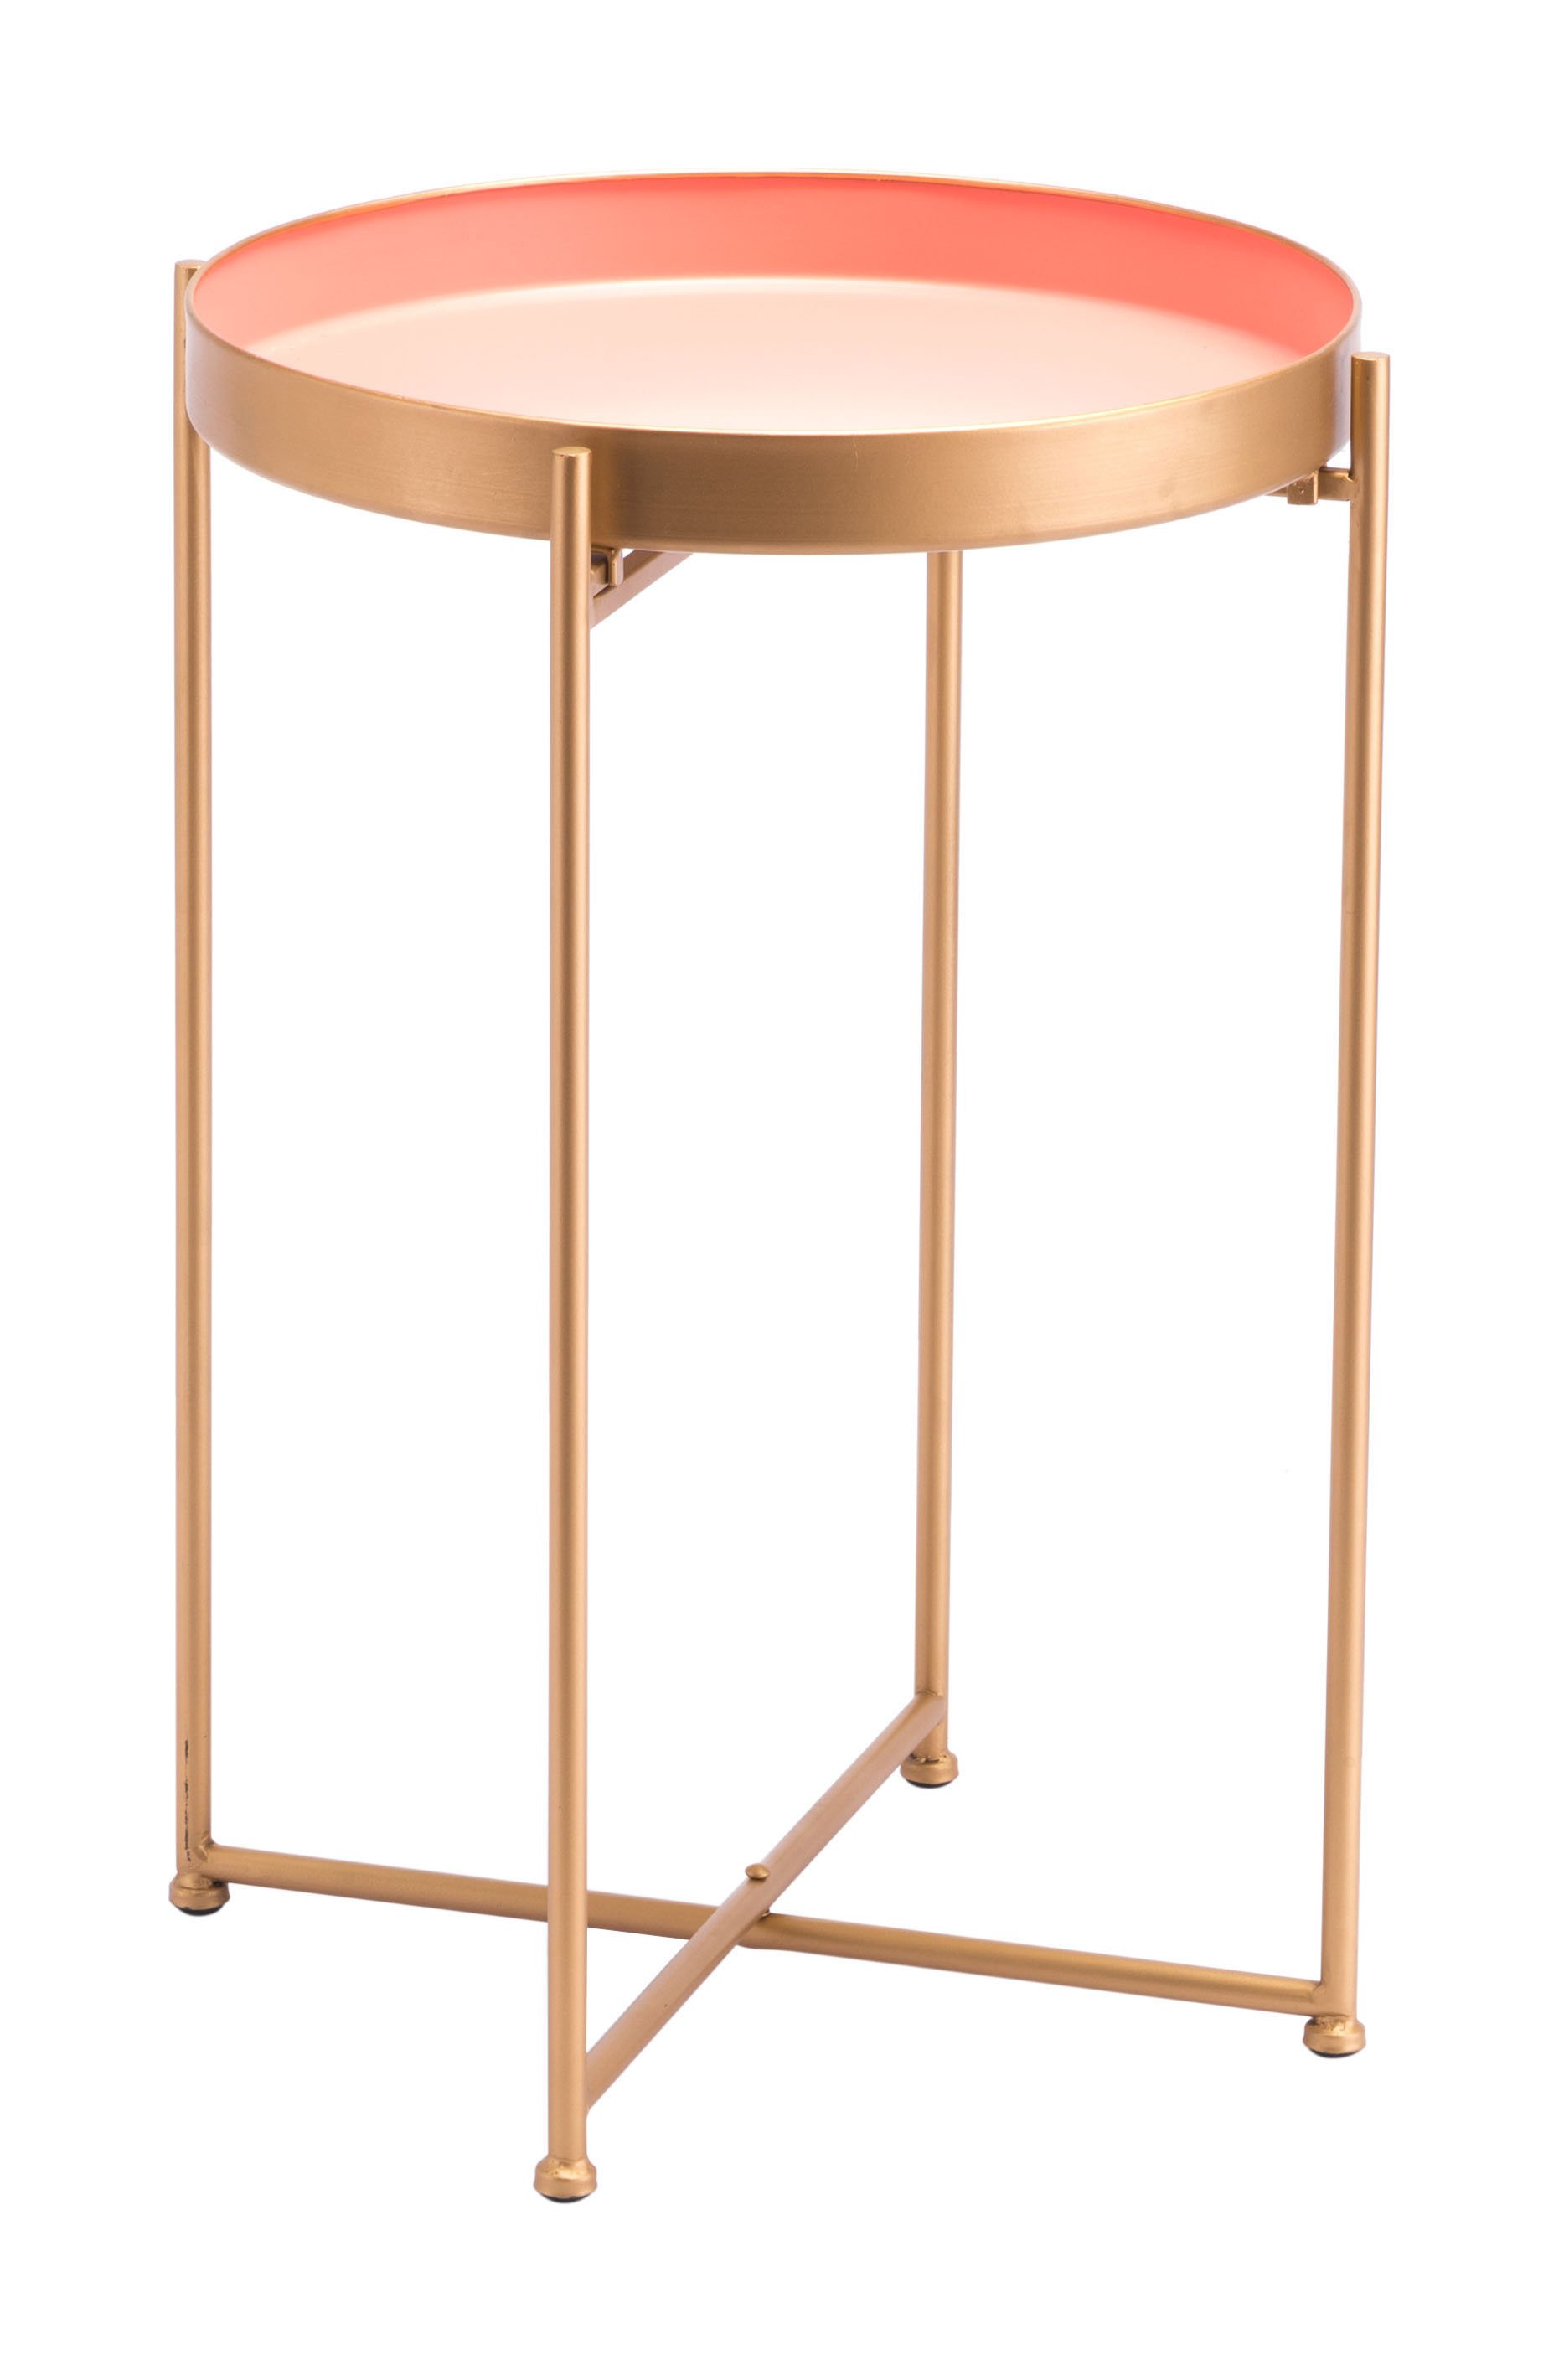 Zuo Modern Red Tall End Table, Round, Pink/Gold